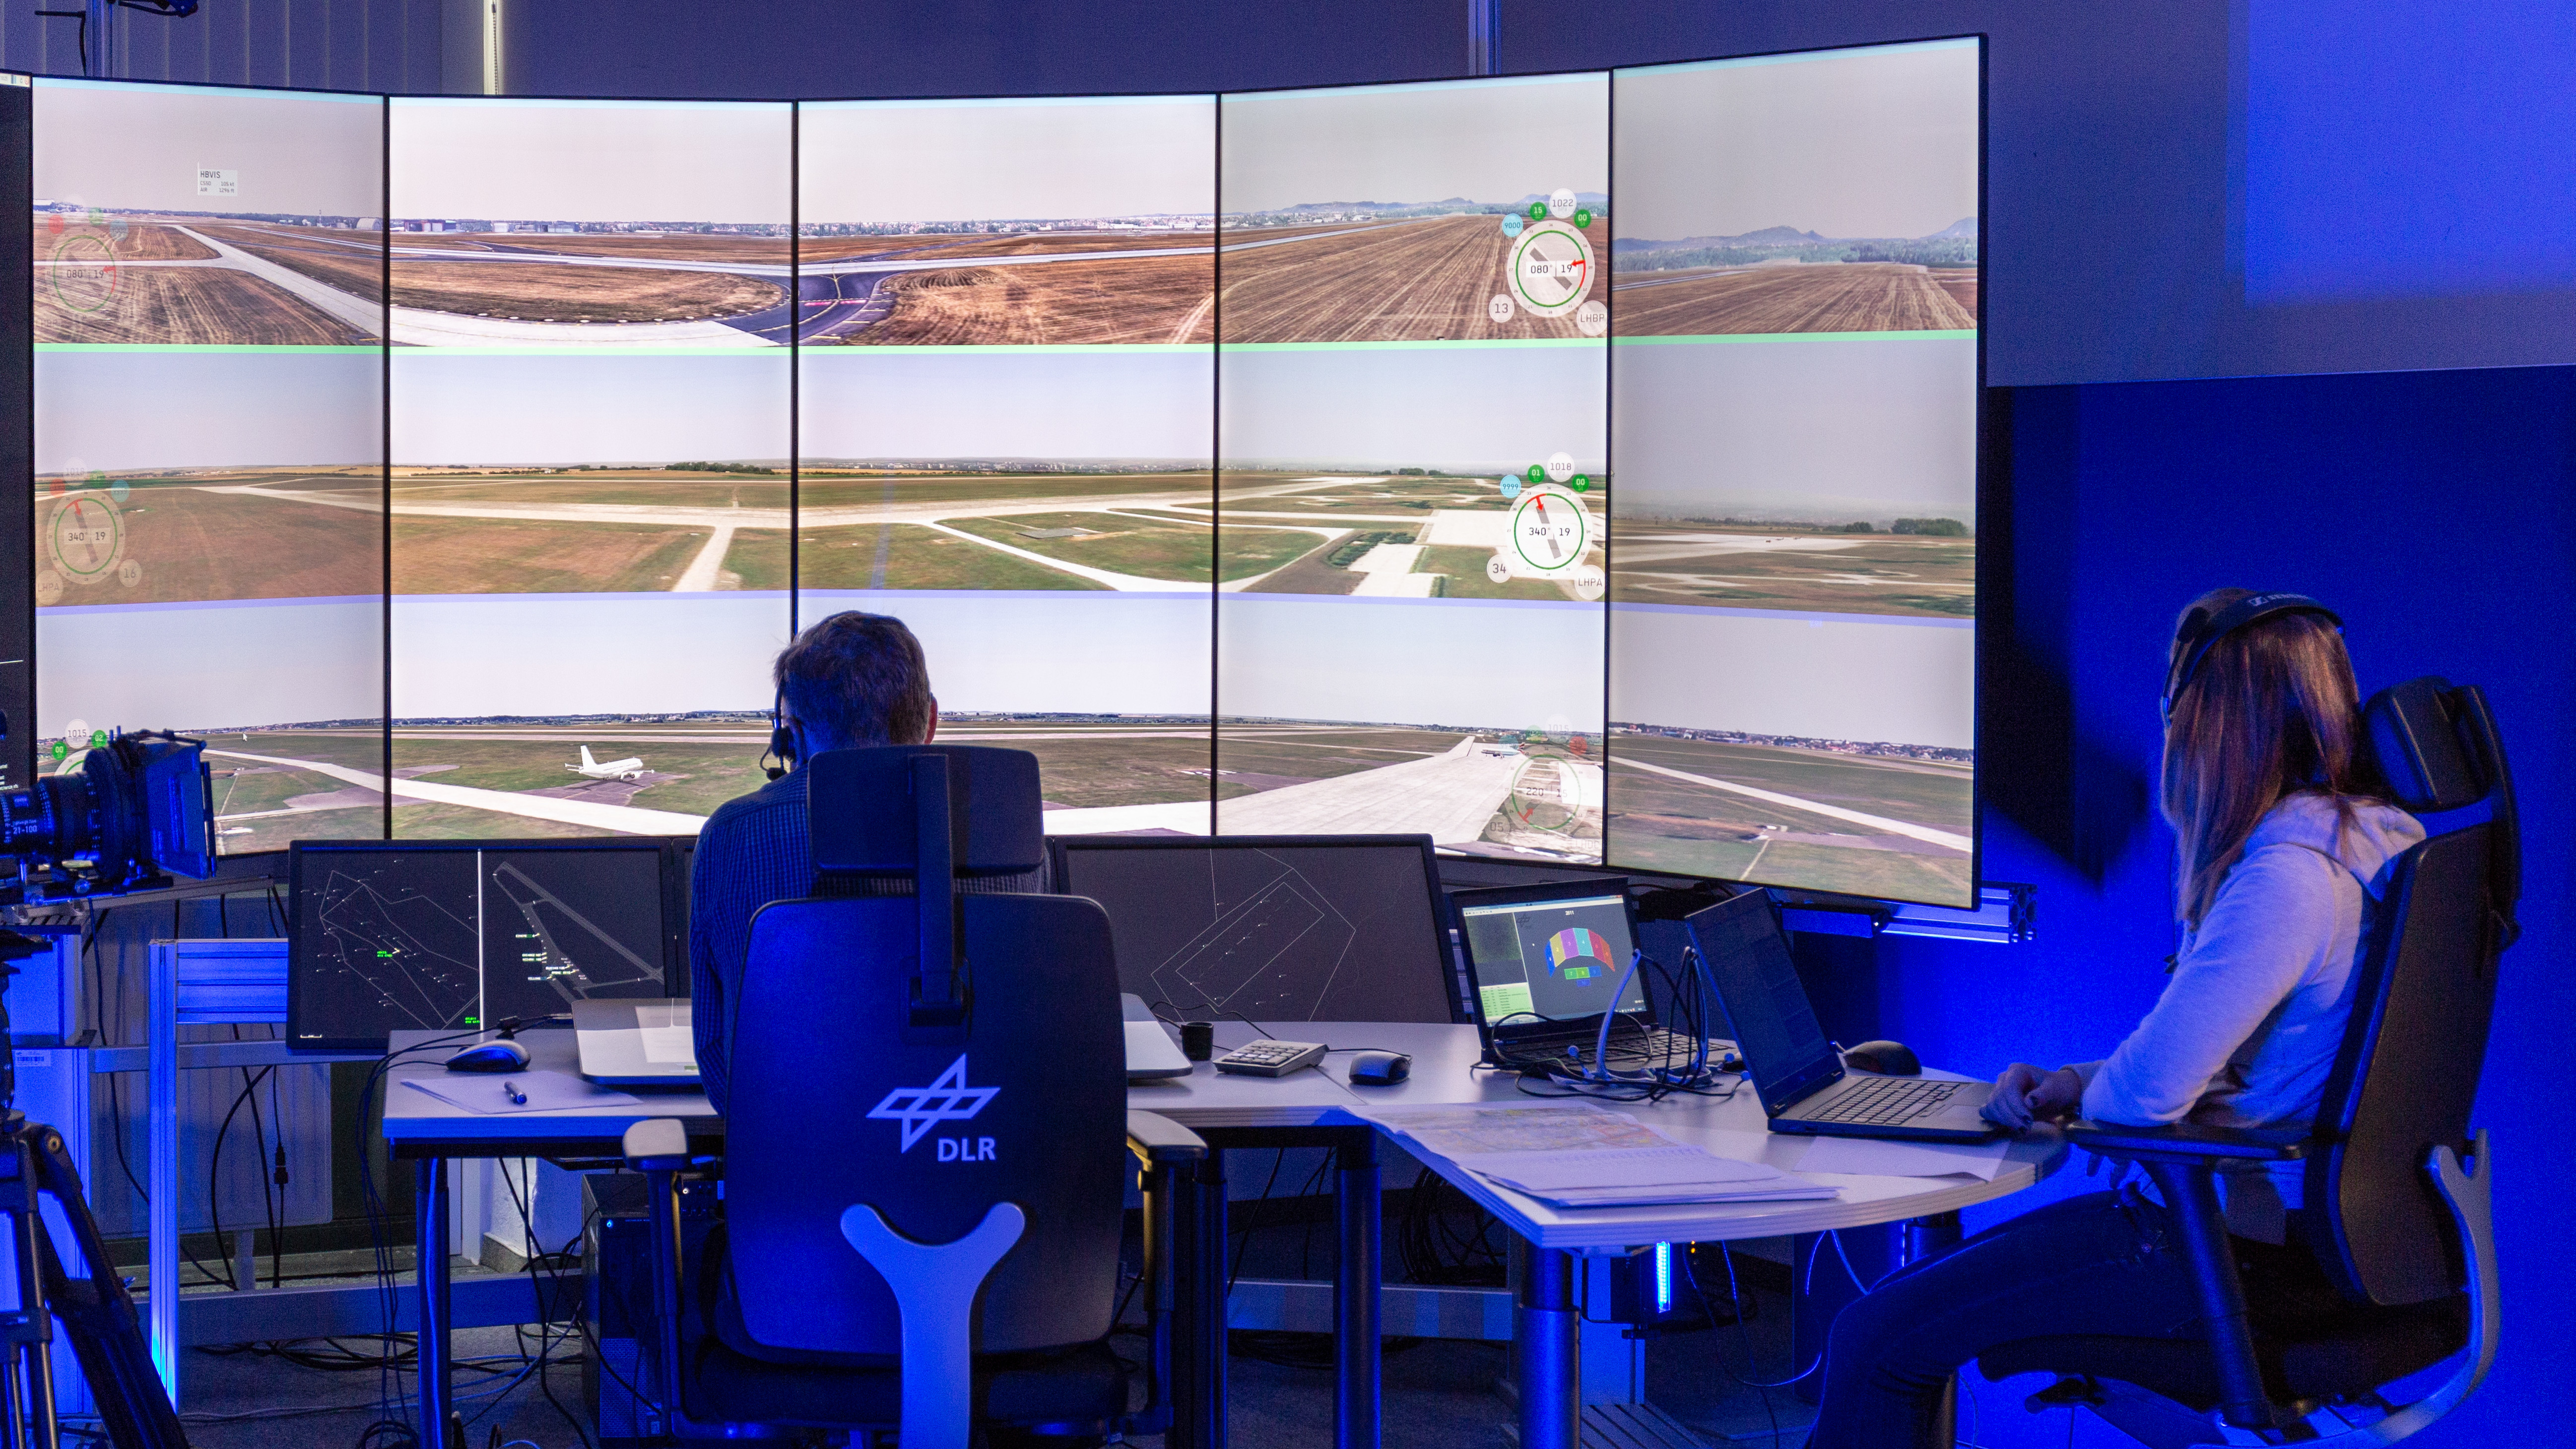 DLR tests a new Multiple Remote Tower concept